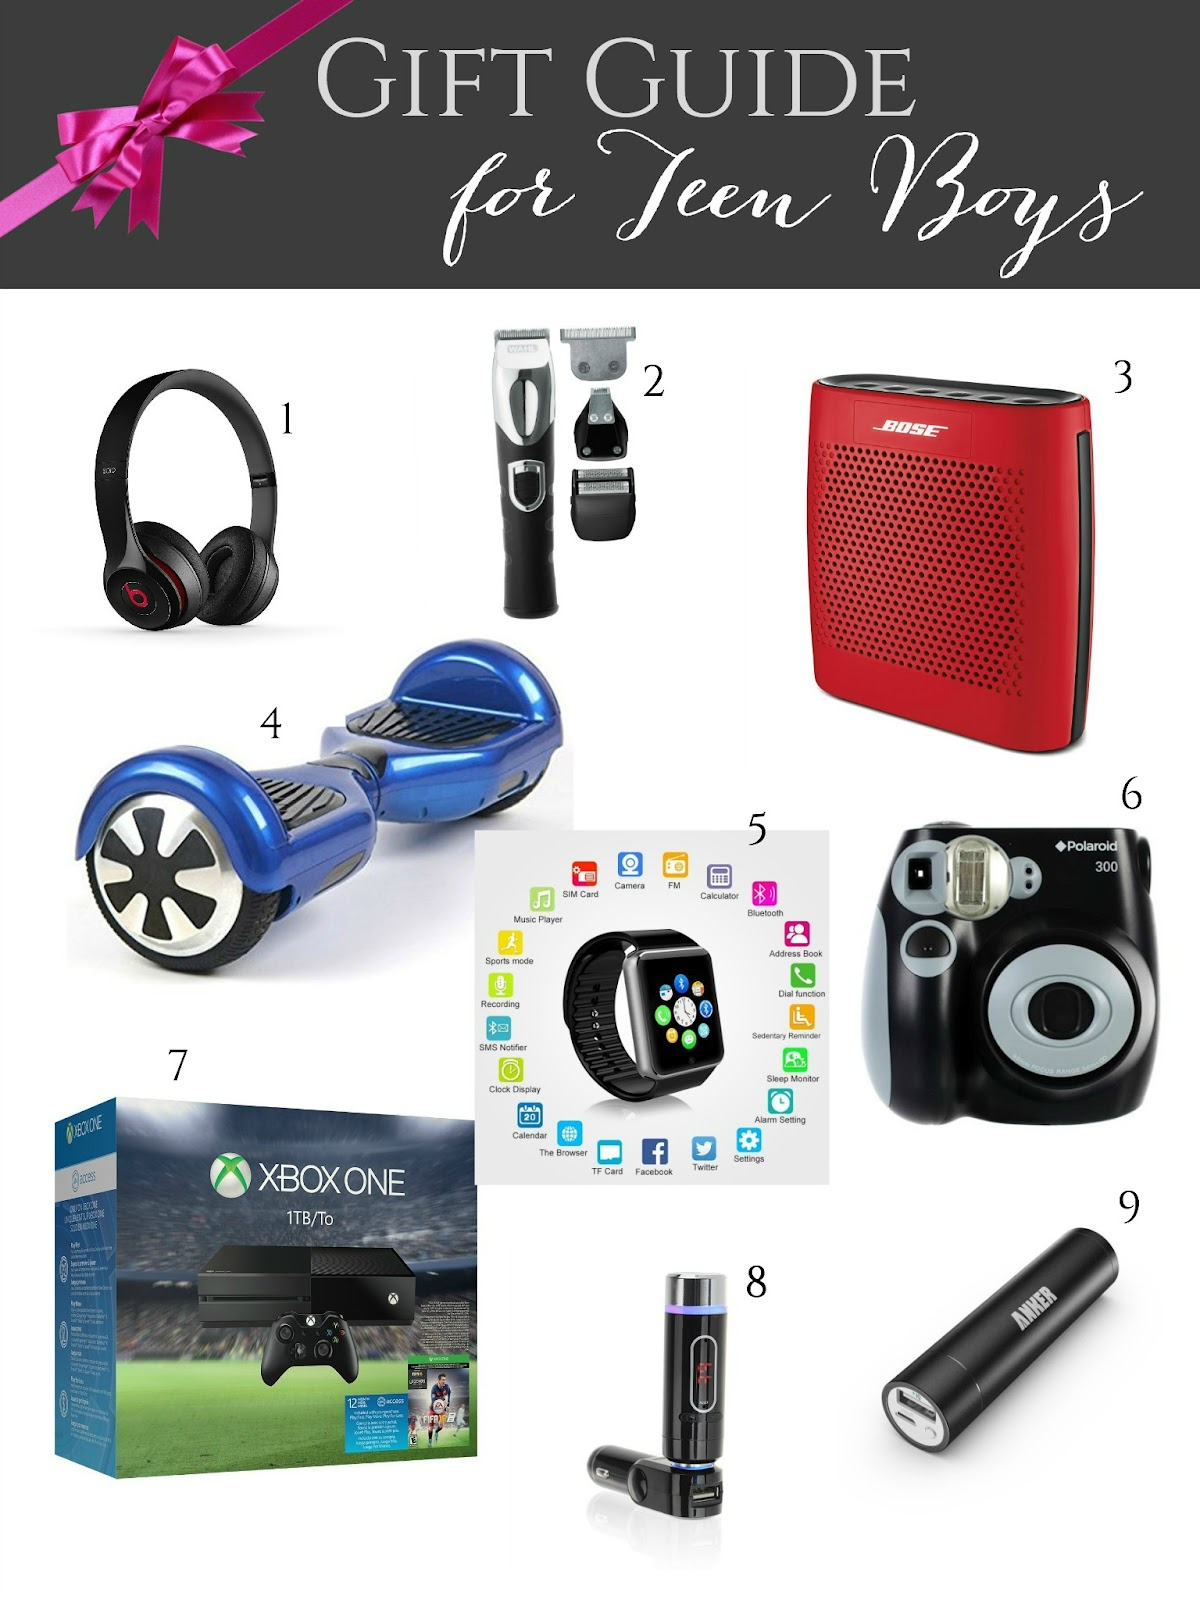 Gifts Ideas For 17 Year Old Boy - rjmovers.com